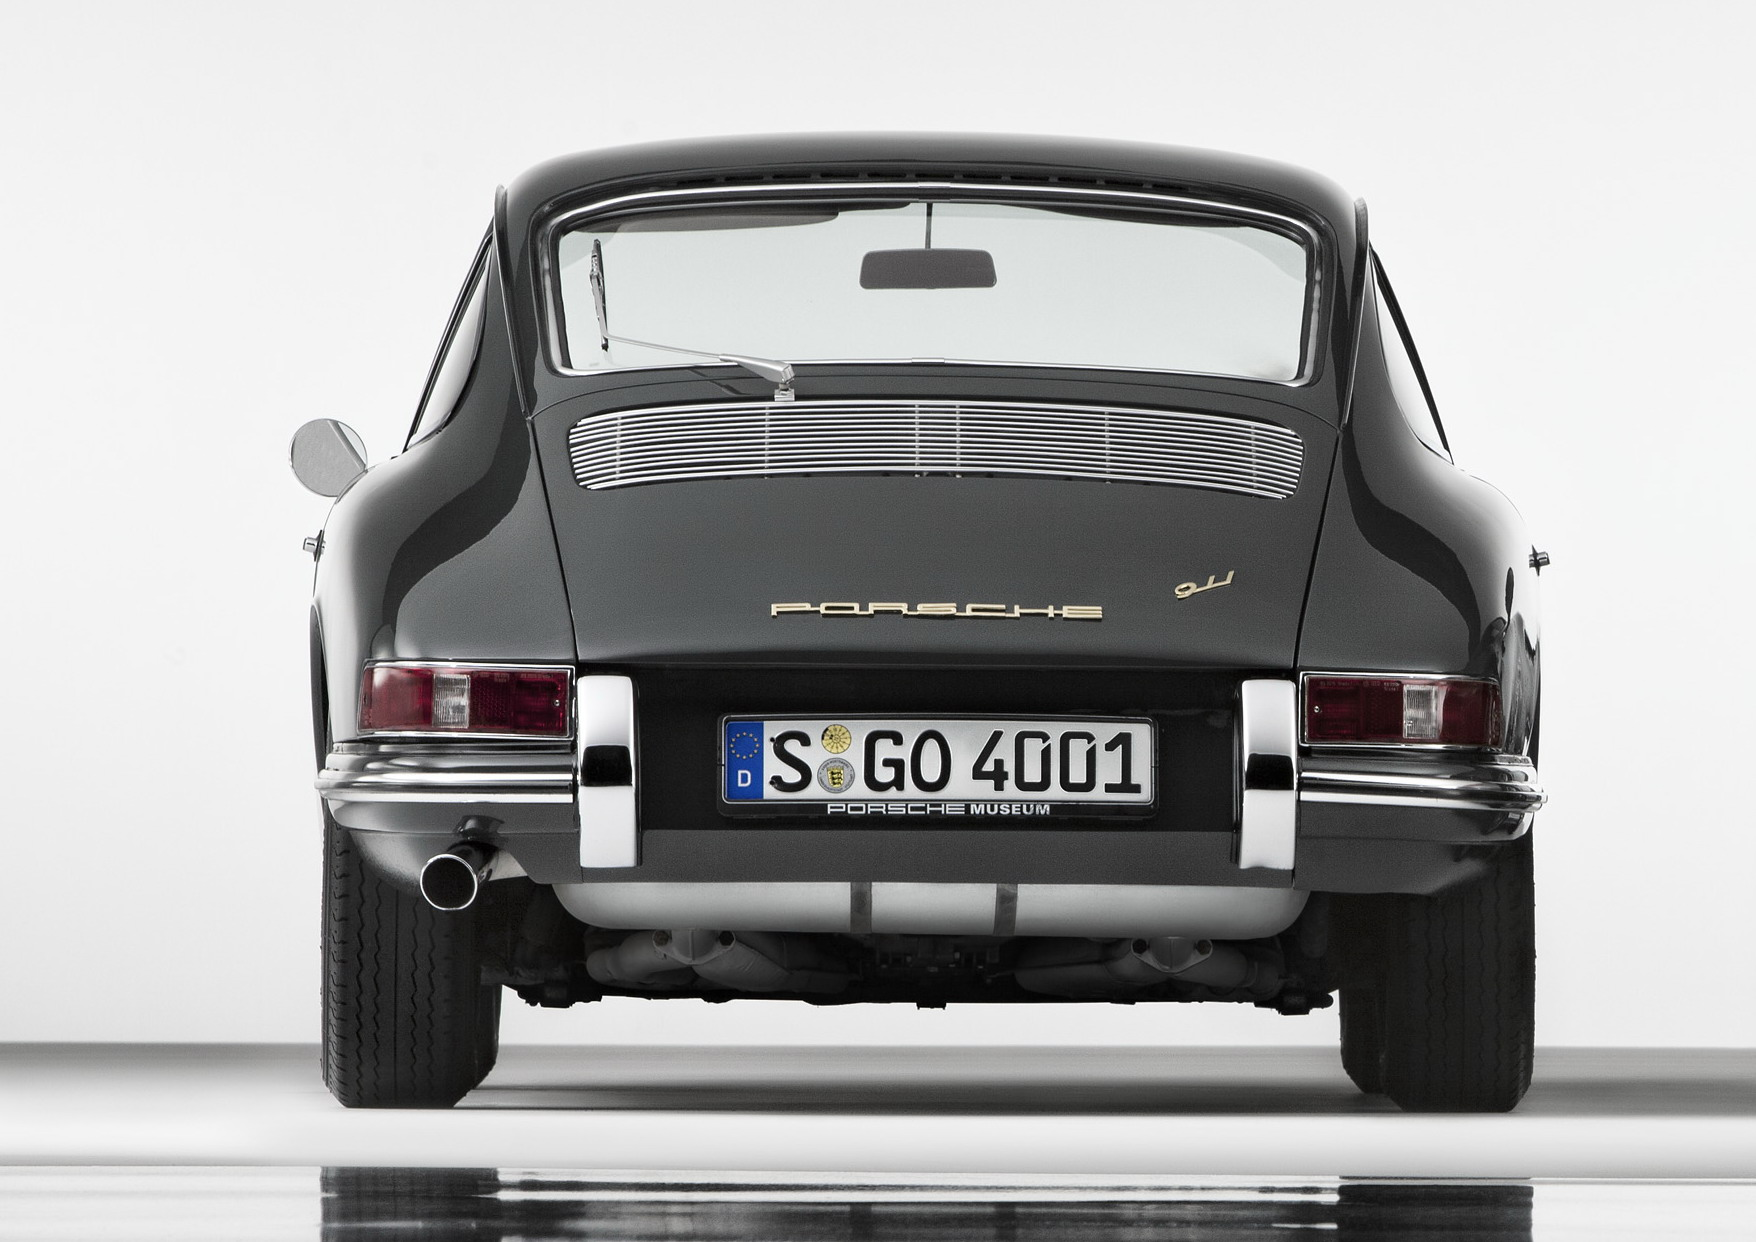 1963 1964 porsche 911 901 review top speed there have been a lot of iconic sports cars over the years but the porsche 911 has reached a whole different level of iconic it is the standard by which vanachro Gallery